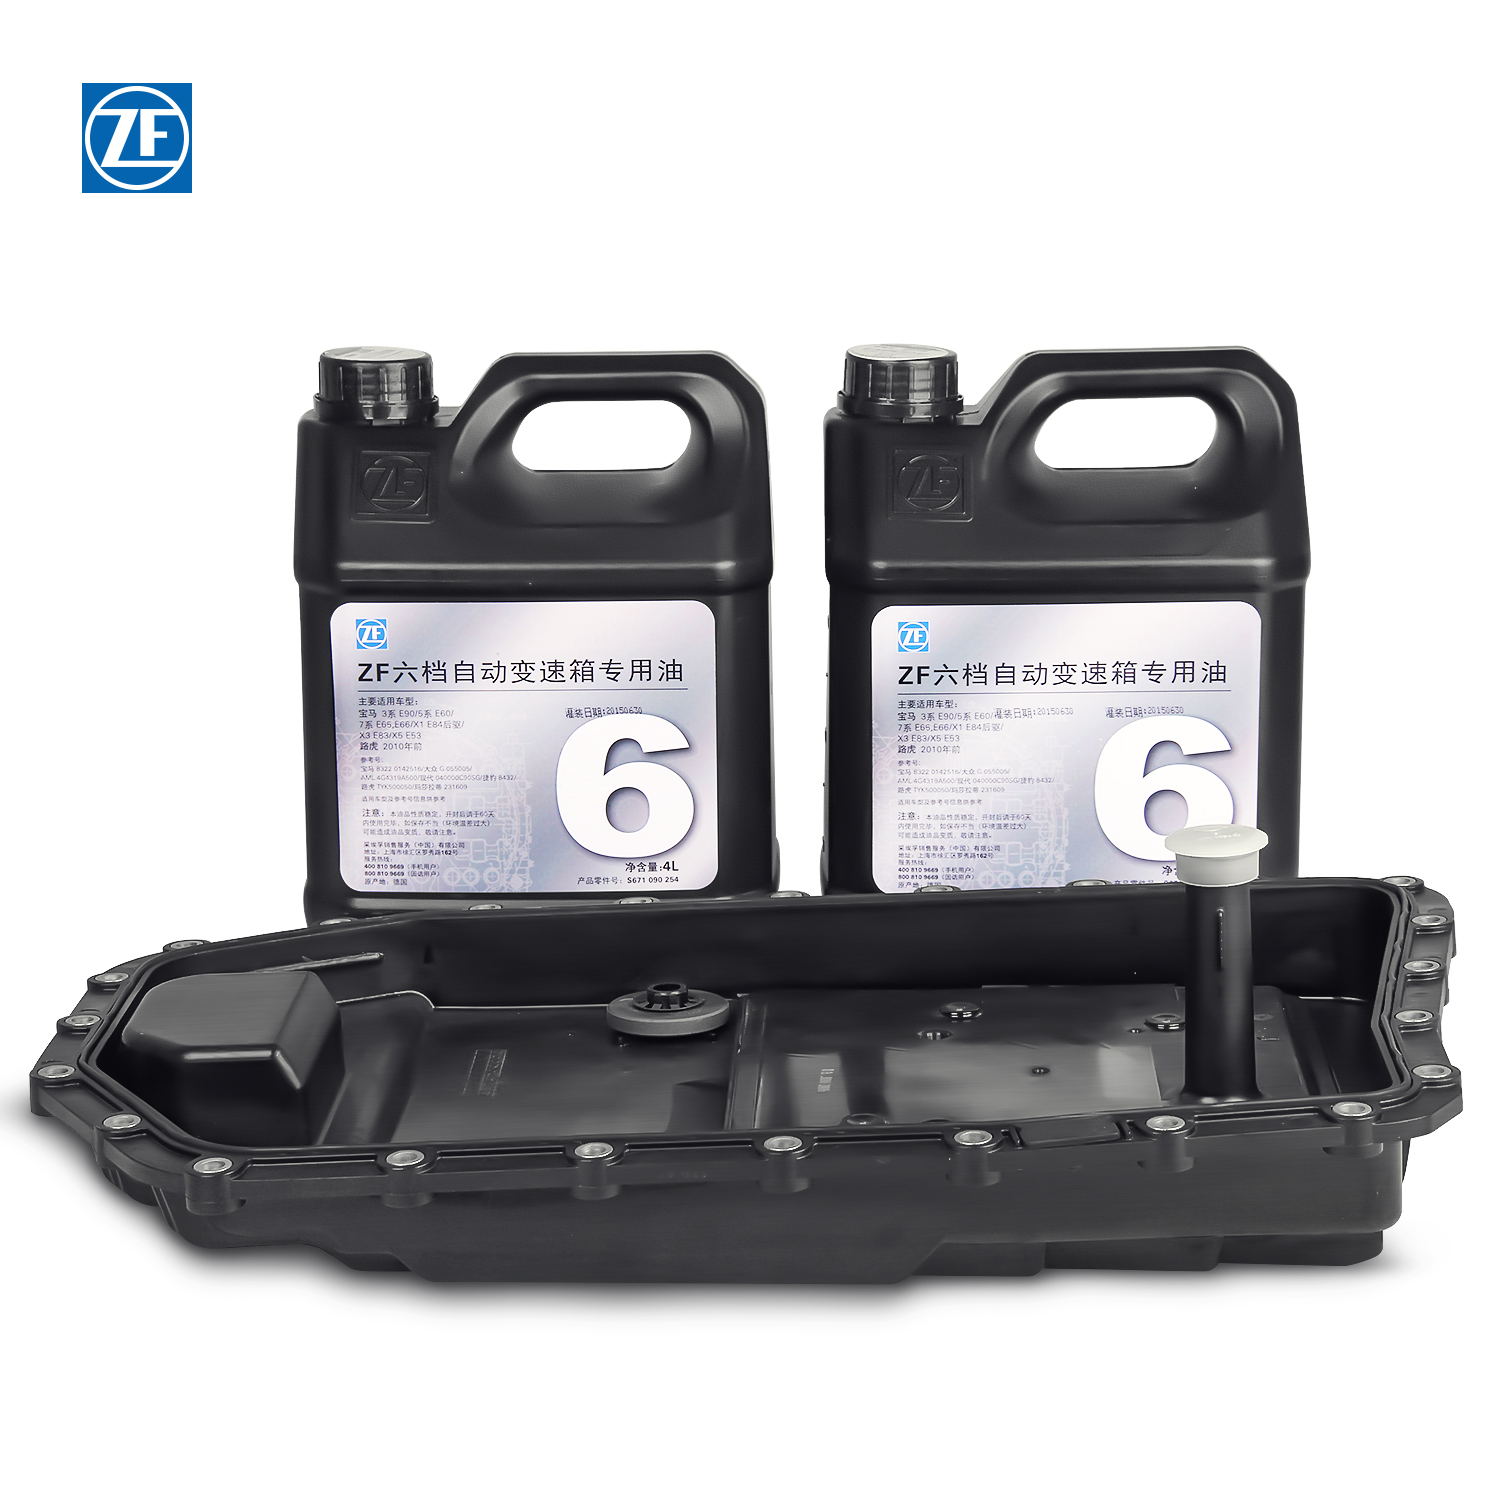 Zf zf ZF6 speed automatic transmission/gearbox oil maintenance kit 1 3 5 6 7 bmw z x Series